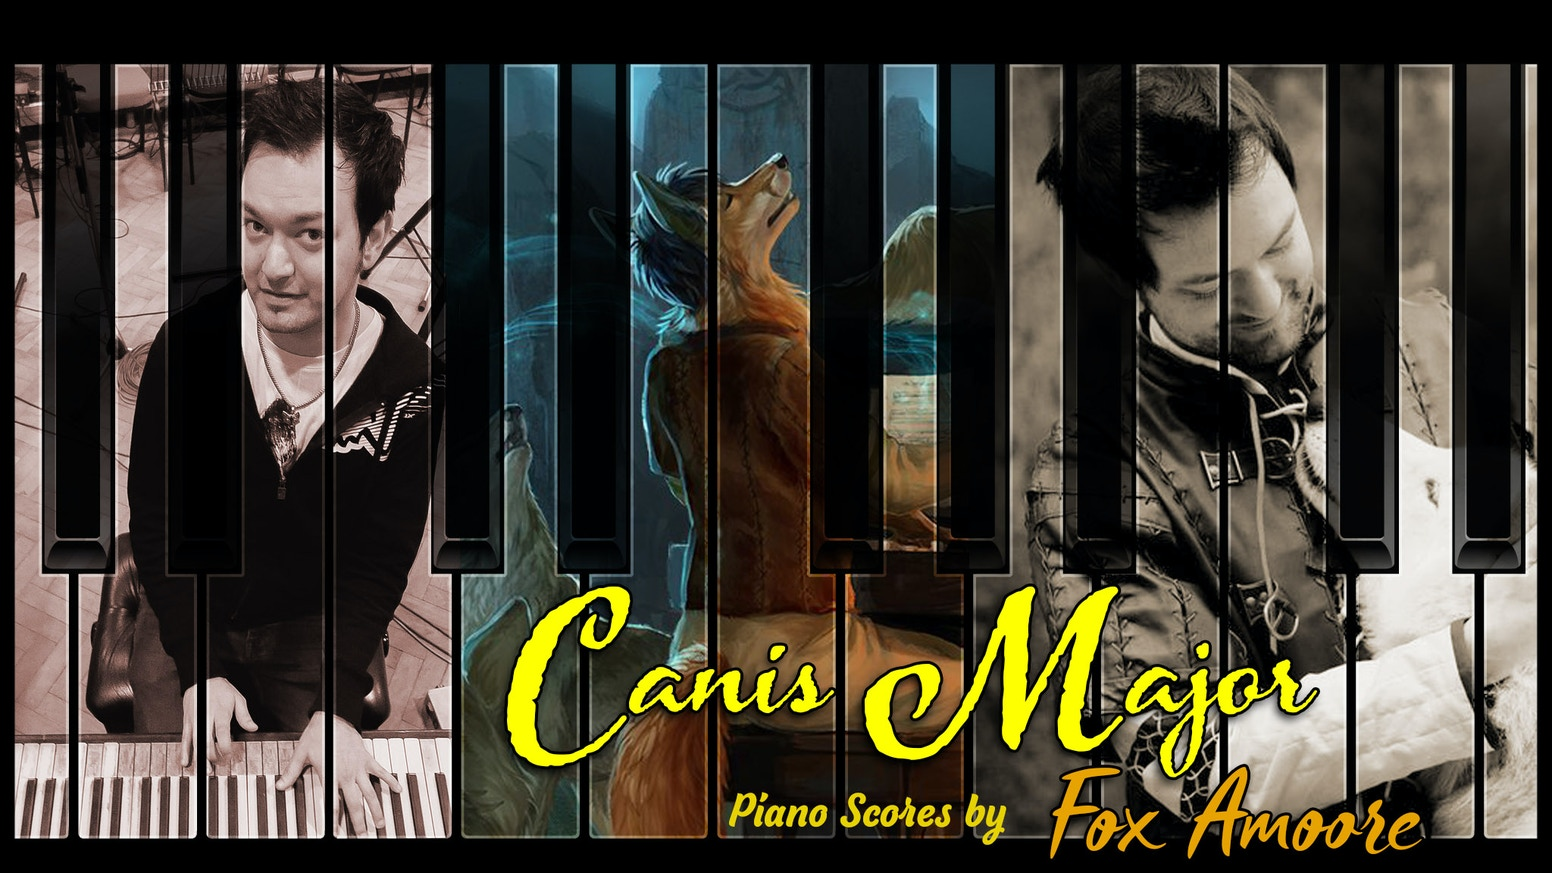 A collection of original pieces scored for piano by artist and composer Fox Amoore.